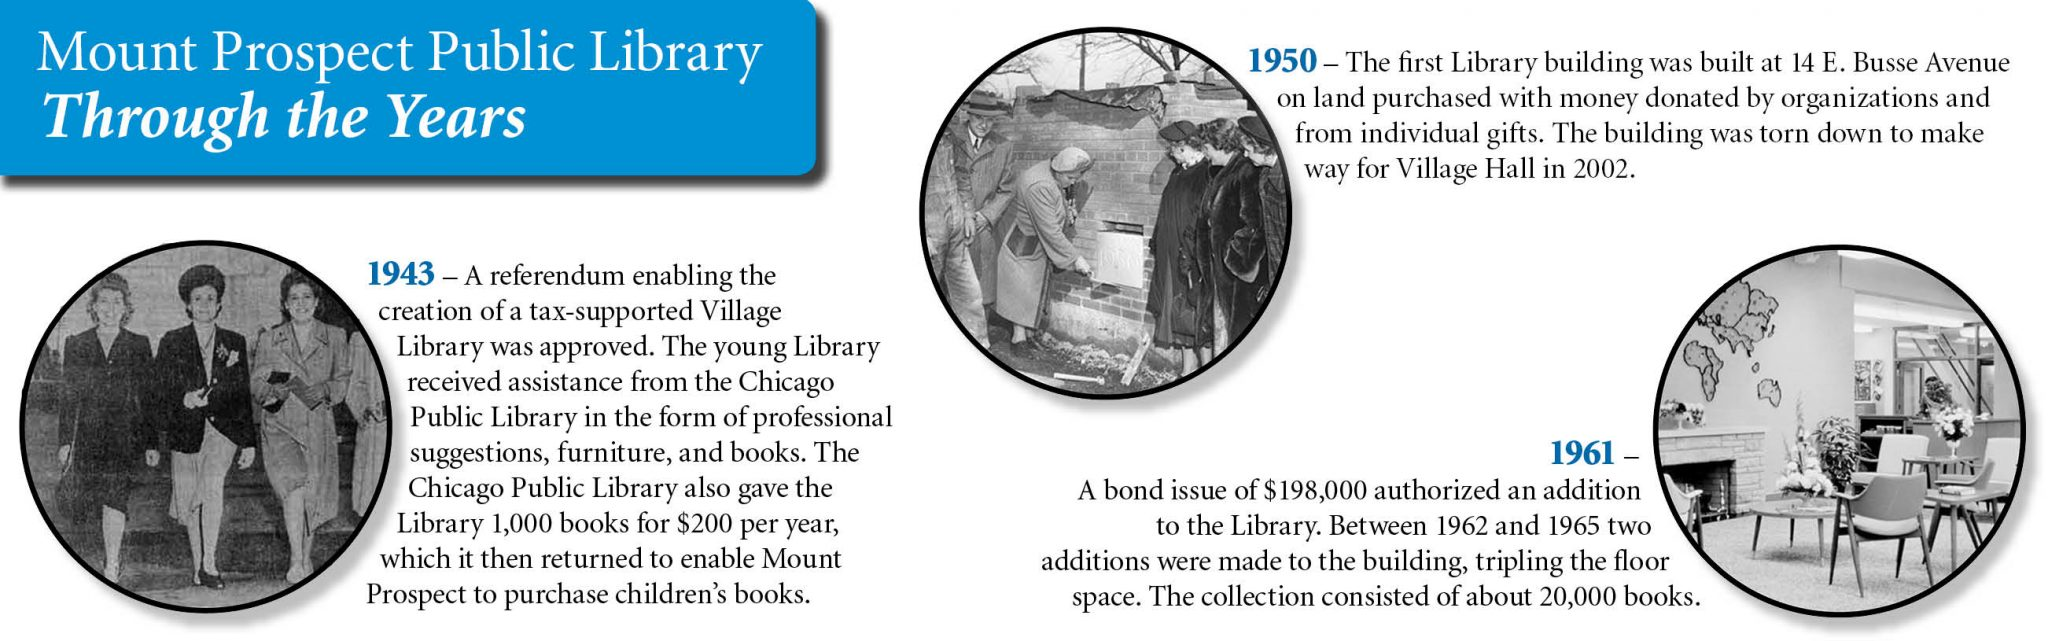 Mount Prospect Public Library through the years (1943, 1950, 1961)